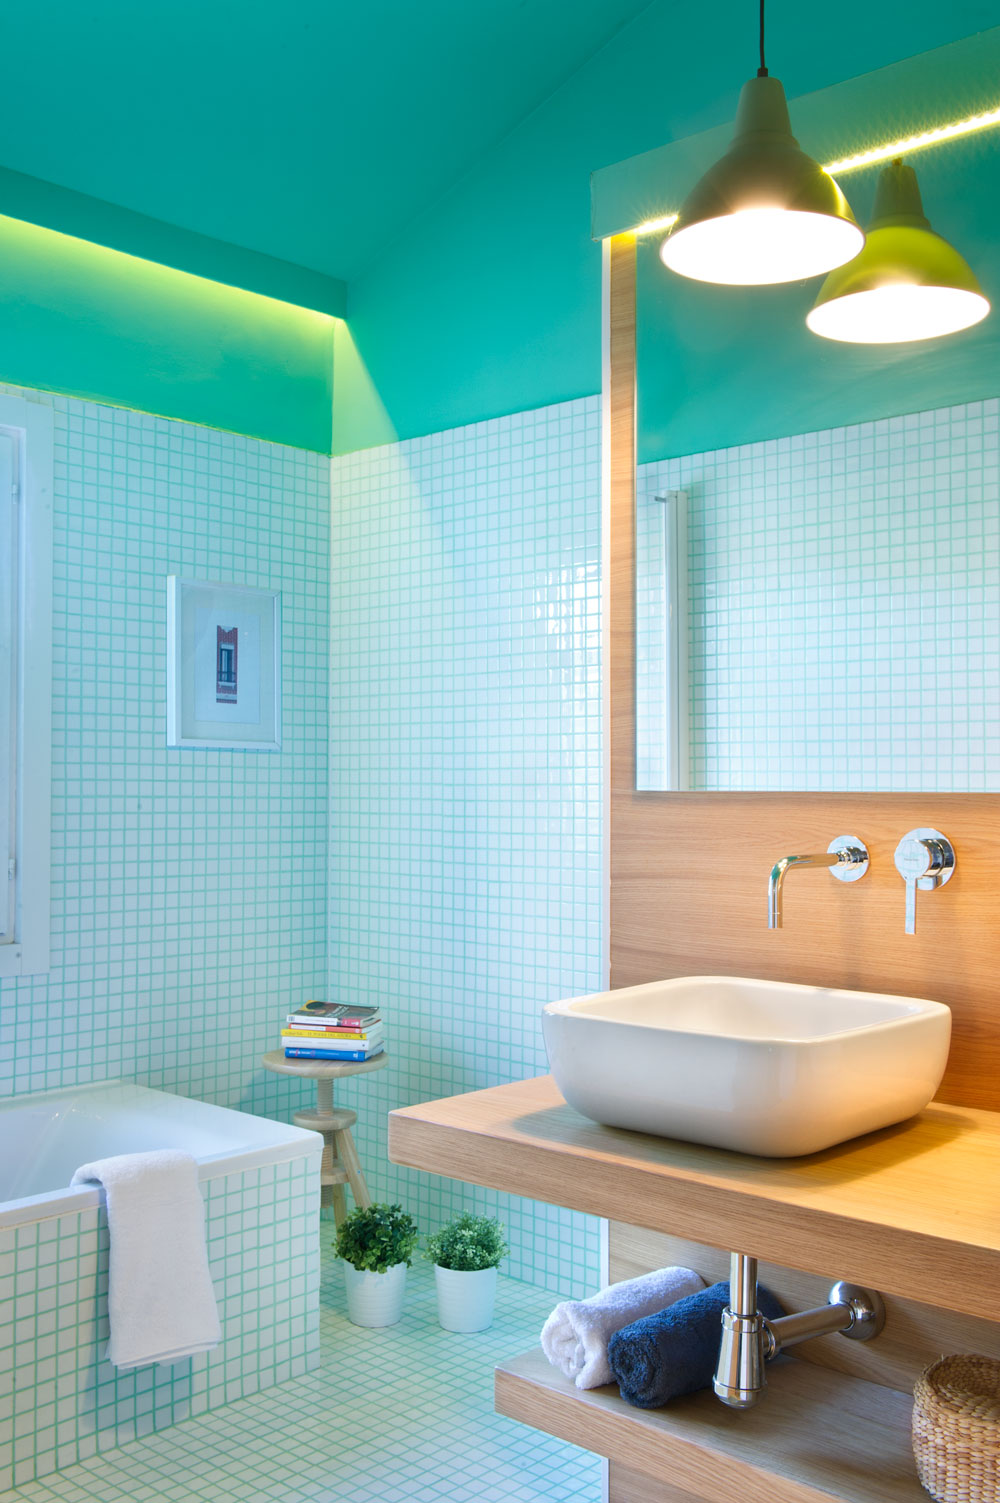 Tiny pieces of tiles are vividly attached to form an entire bathroom flooring and wall. A comfy bath tub is working well, a functional wooden stool for your books and under sink shelf for toiletries and towels are installed for your convenience.